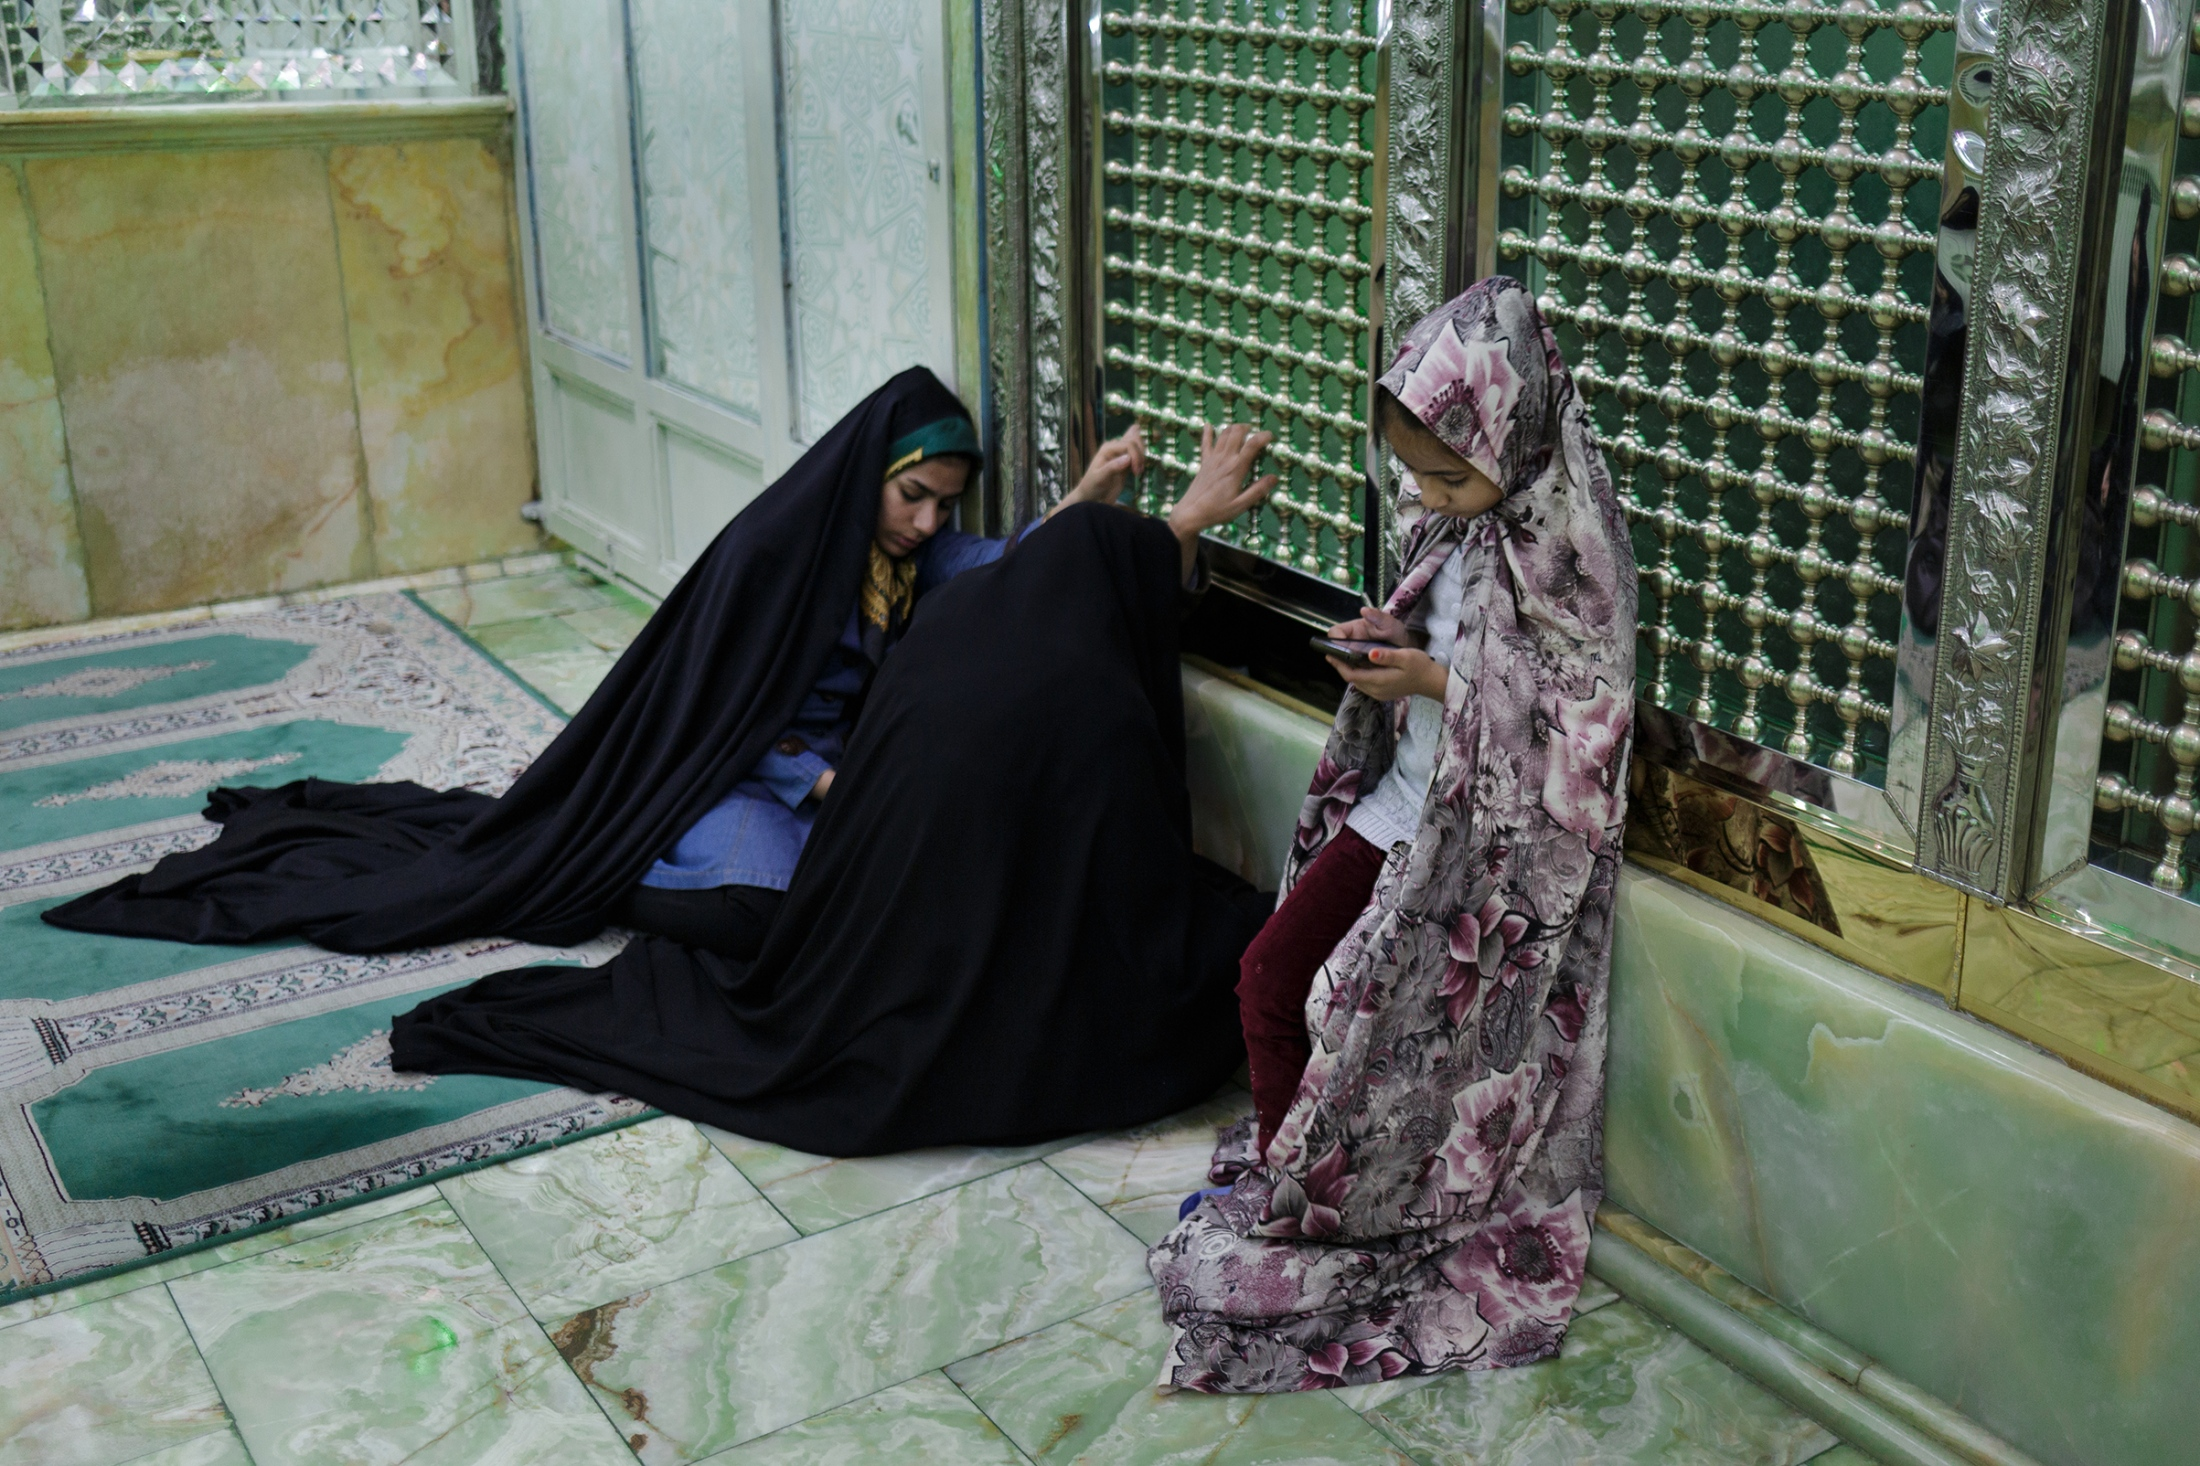 Women pray in a shrine in Tehran's bazaar. After the Islamic Revolution in 1979, the universities remained closed for two years to adapt the curricula to the values of the revolution. The new courses are mandatory for all students.